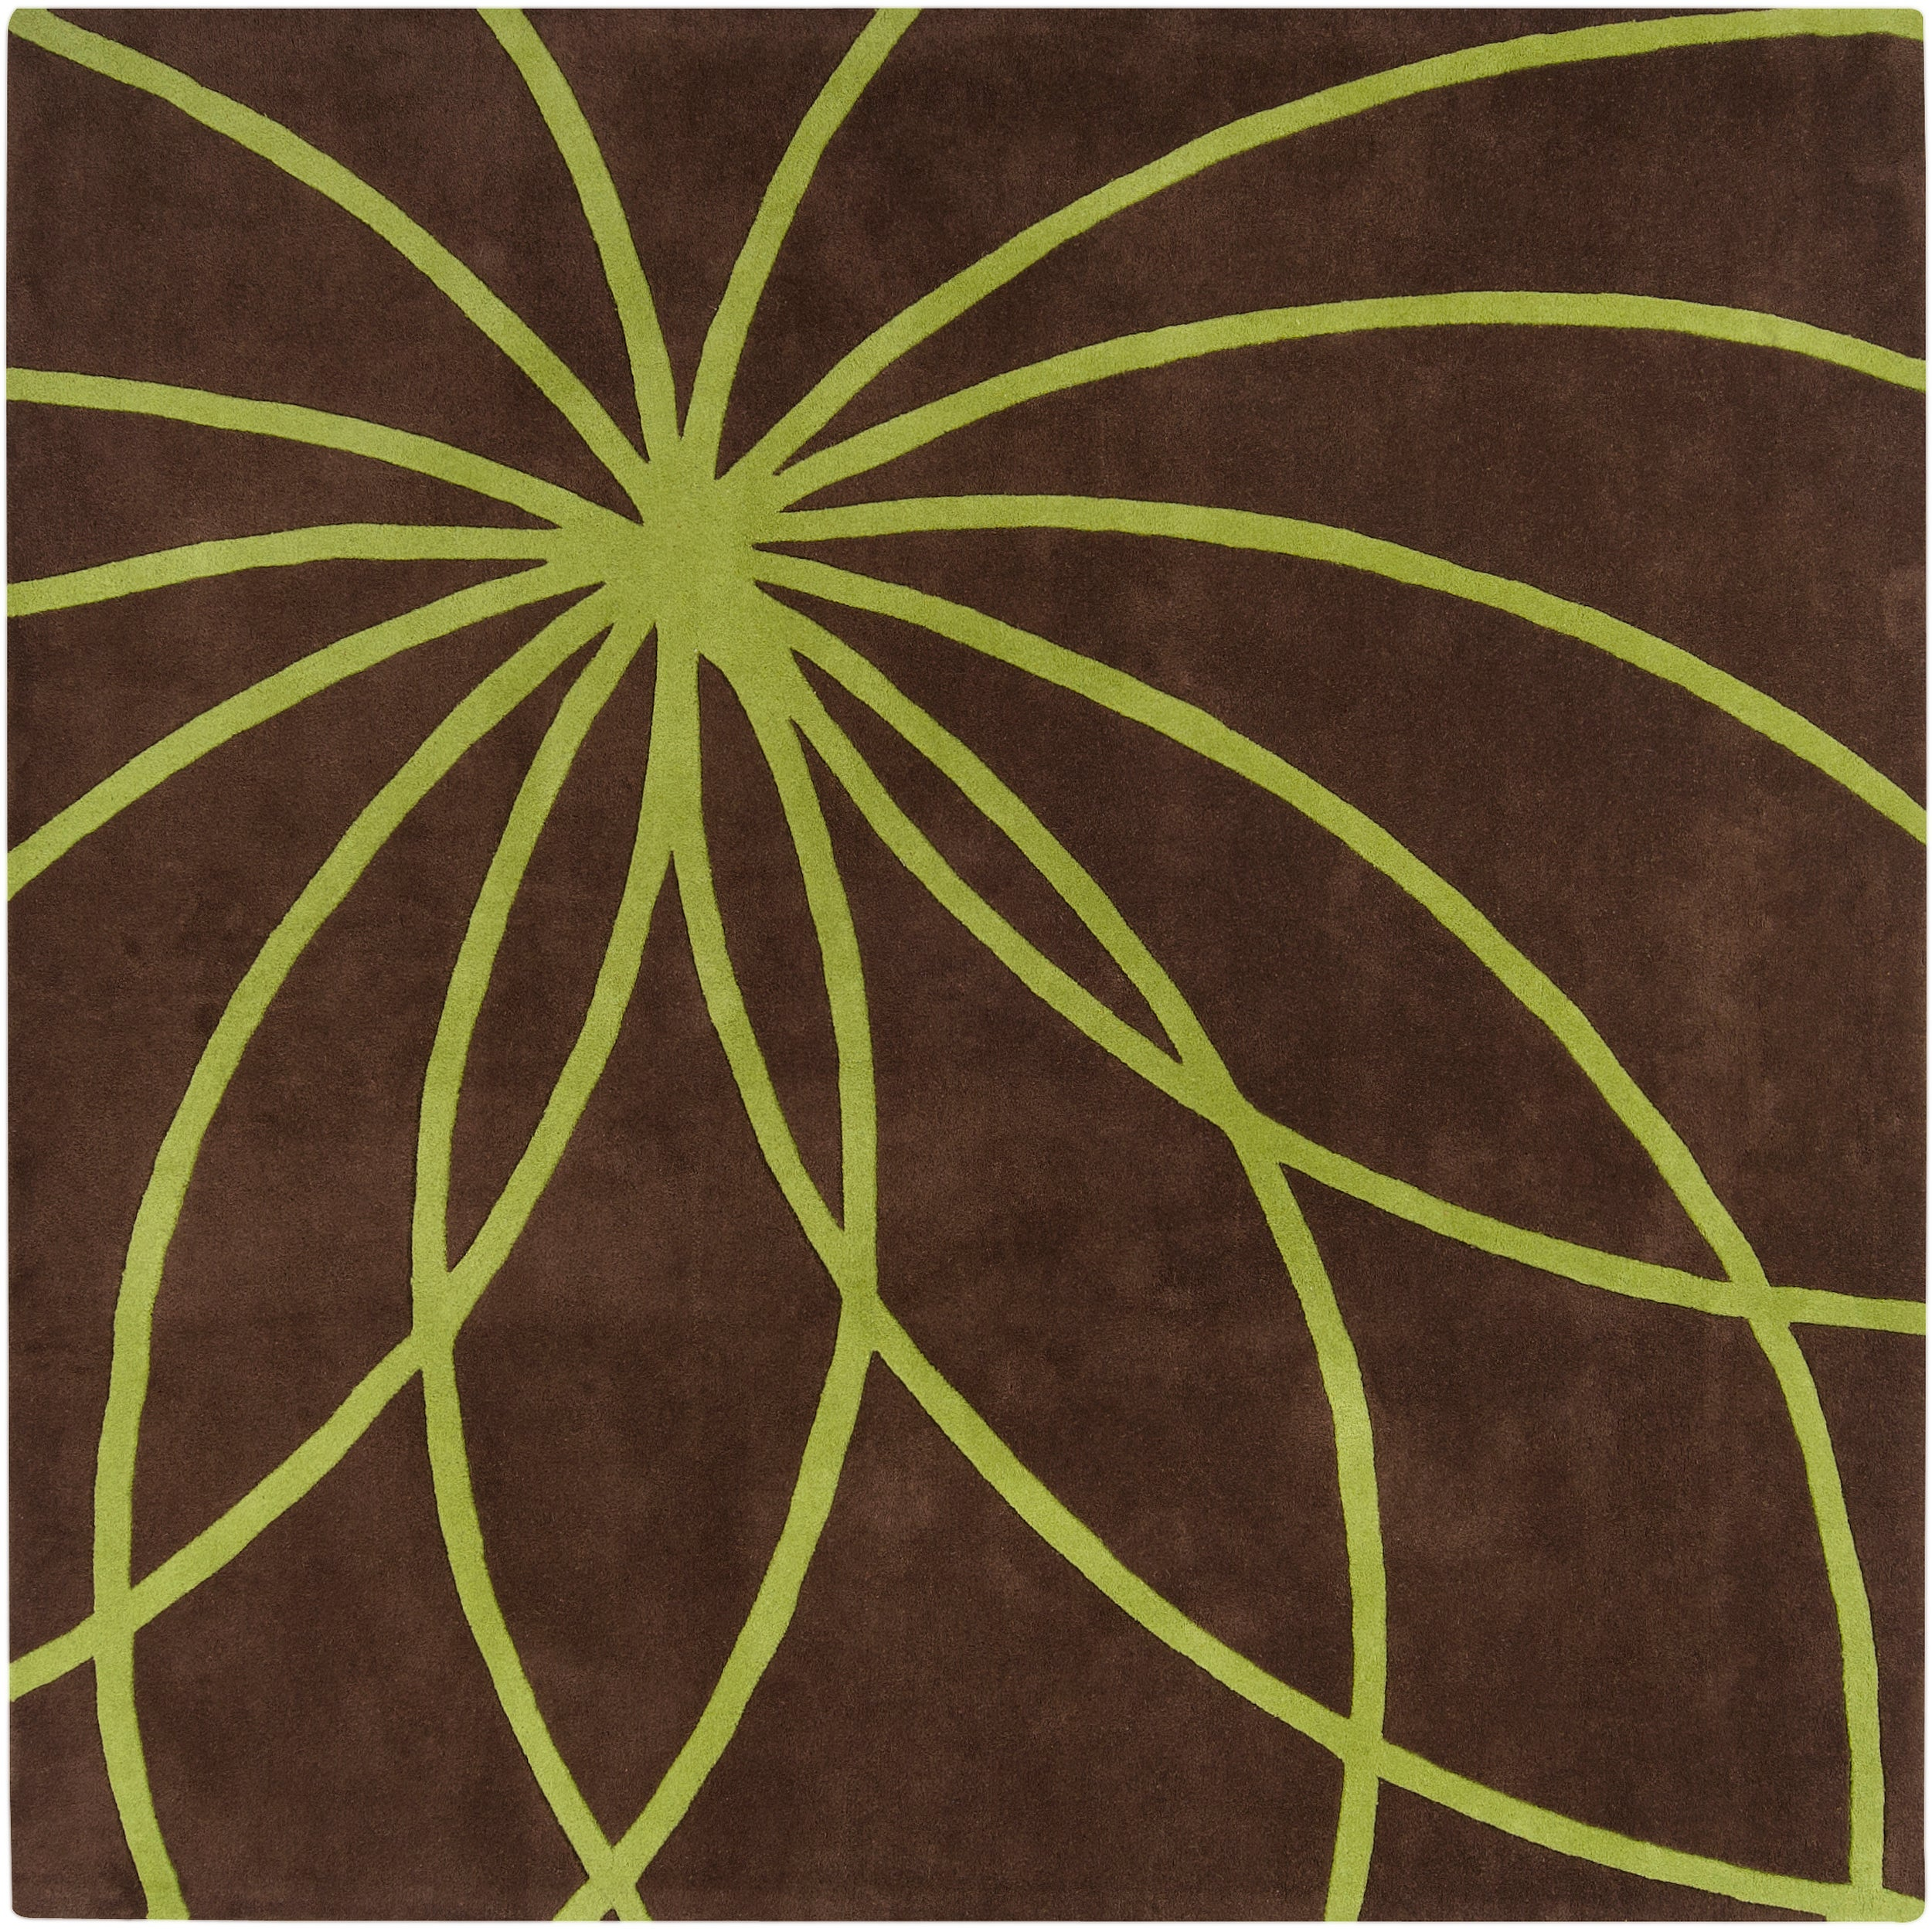 Hand-tufted Contemporary Brown/Green Zhores Wool Abstract Rug (6' Square)